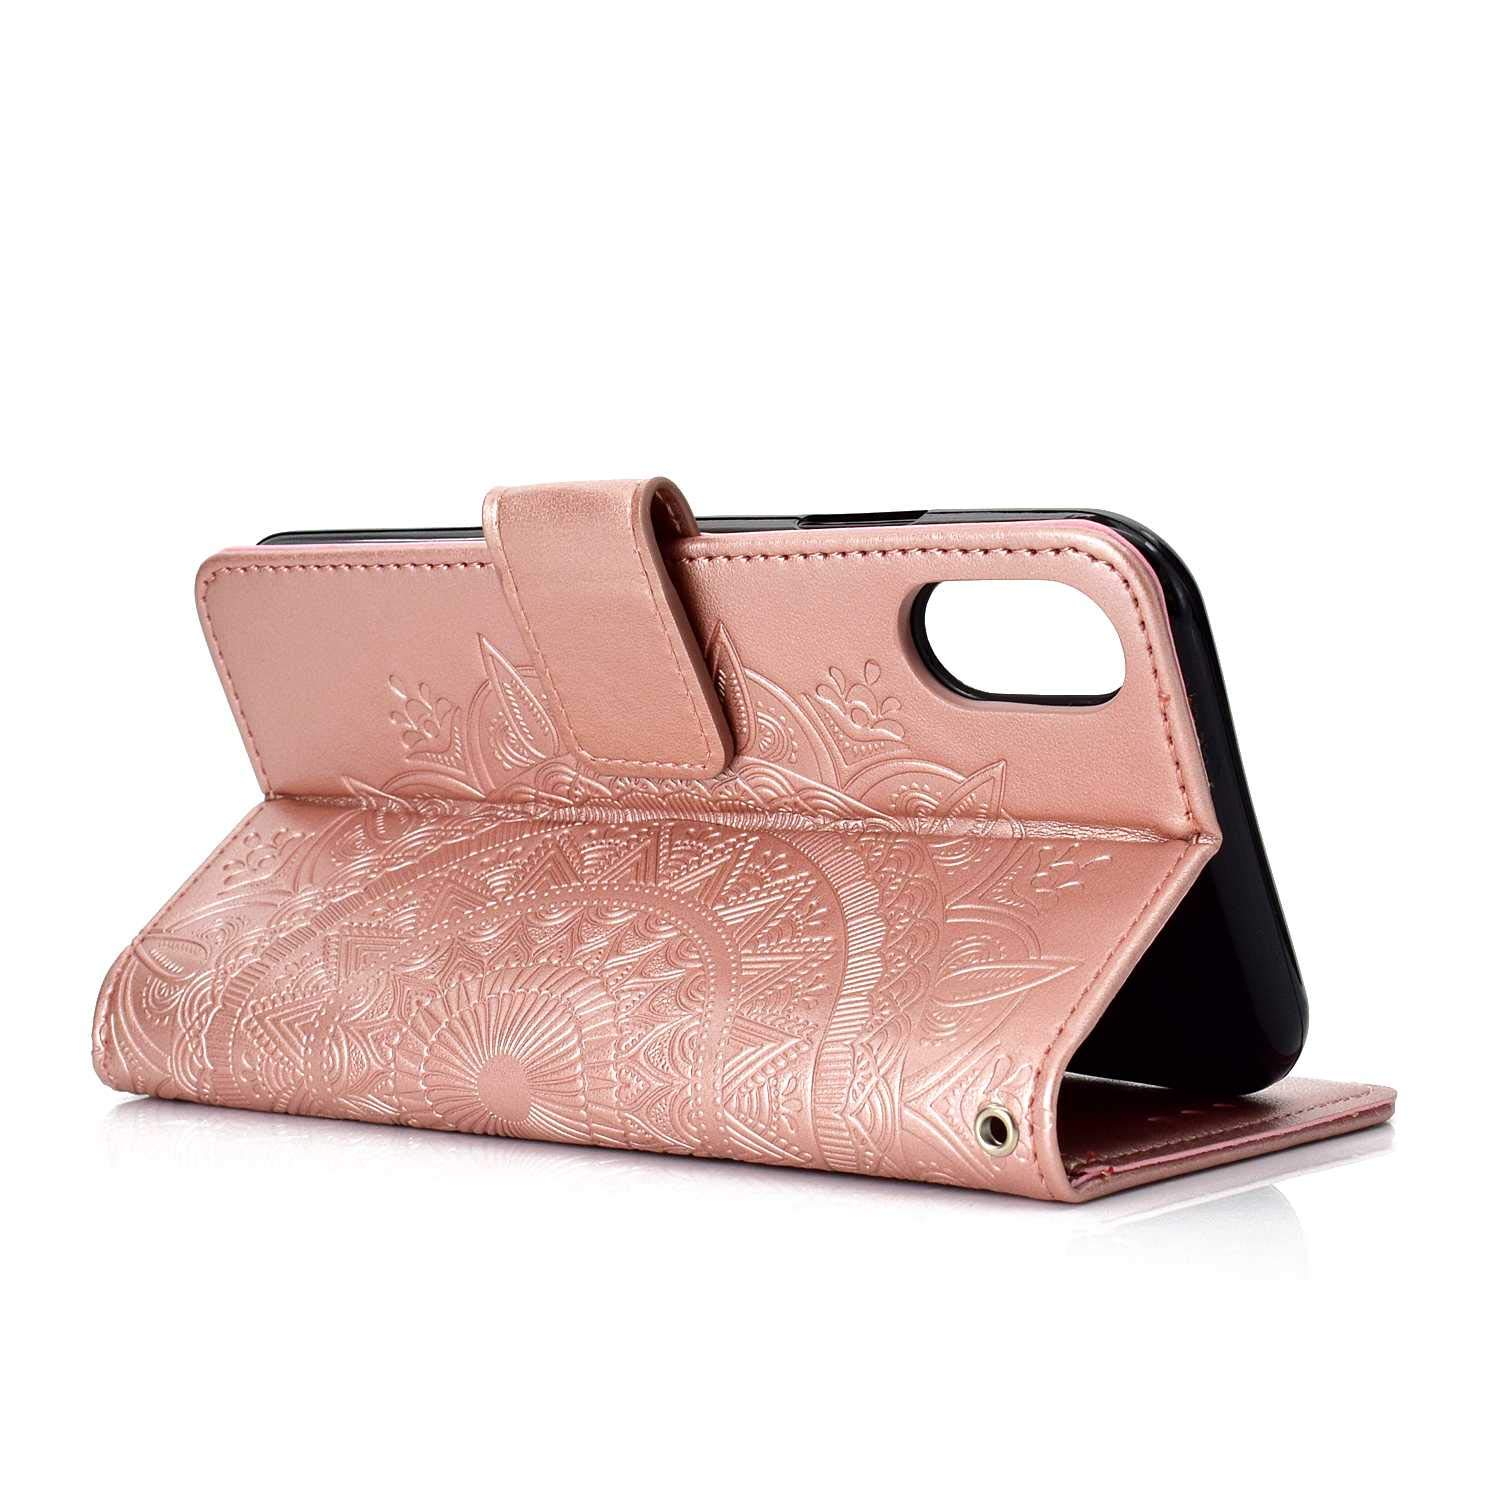 Case iPhone XR, Bear Village PU Leather Embossed Design Case with Card Holder and ID Slot, Wallet Flip Stand Cover for Apple iPhone XR (#1 Rose Gold) by Bear Village (Image #3)